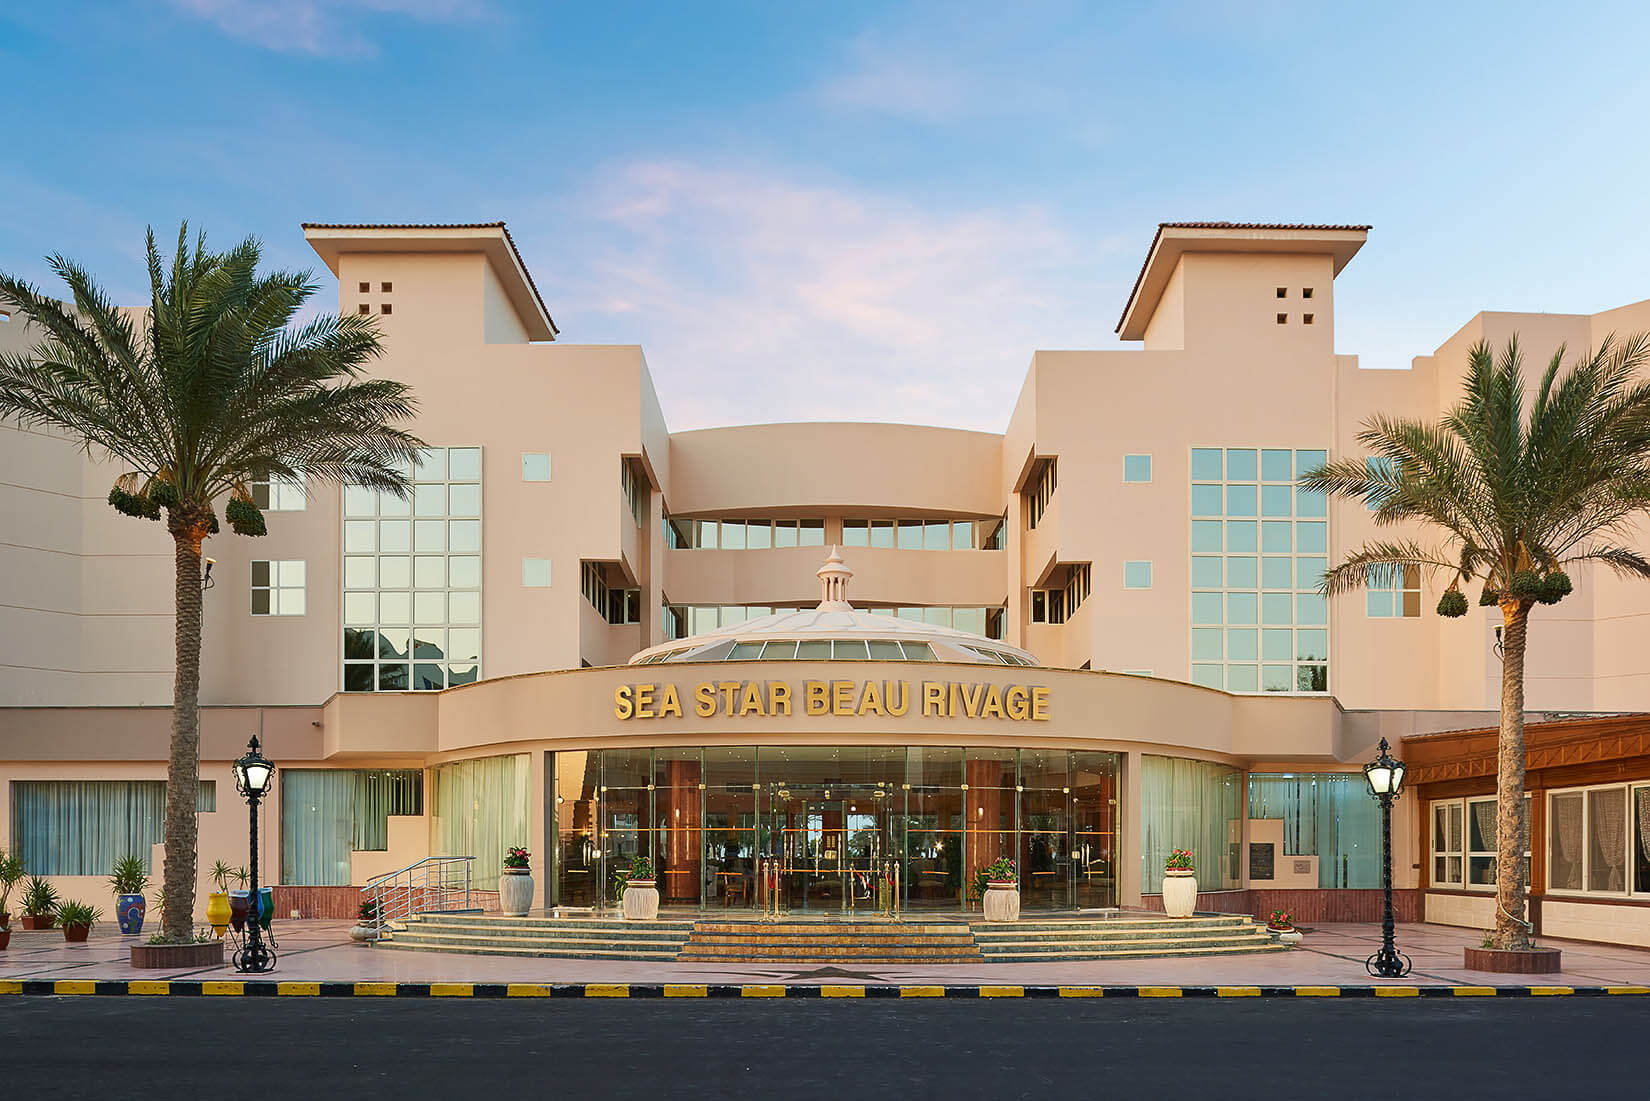 Facade - Sea star beau rivage hotel